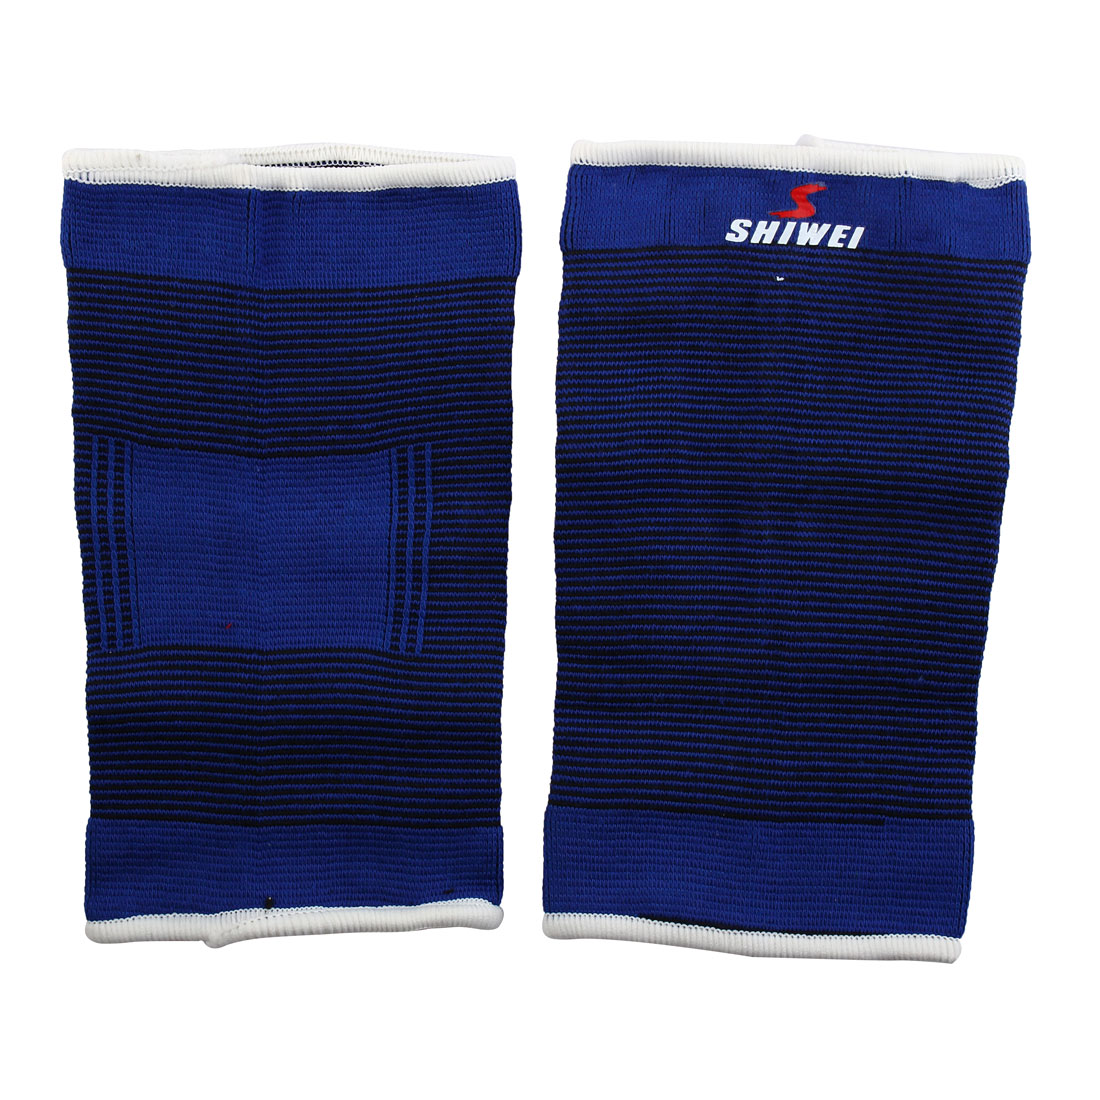 Sports Stripe Calf Leg Sleeves Support Elastic Protector Black Blue 2 Pcs